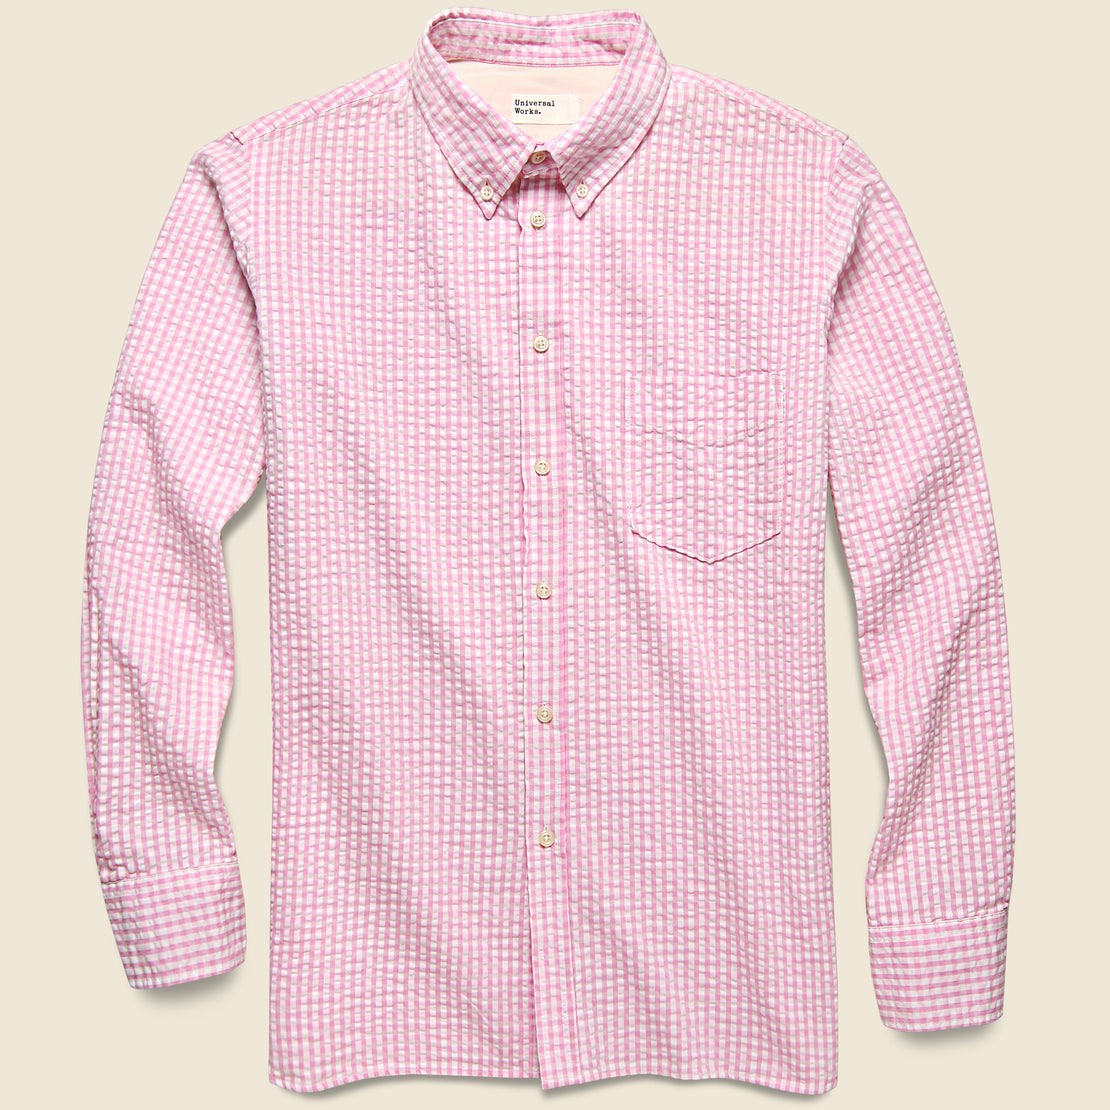 Universal Works Everyday Shirt - Pink Gingham Seersucker